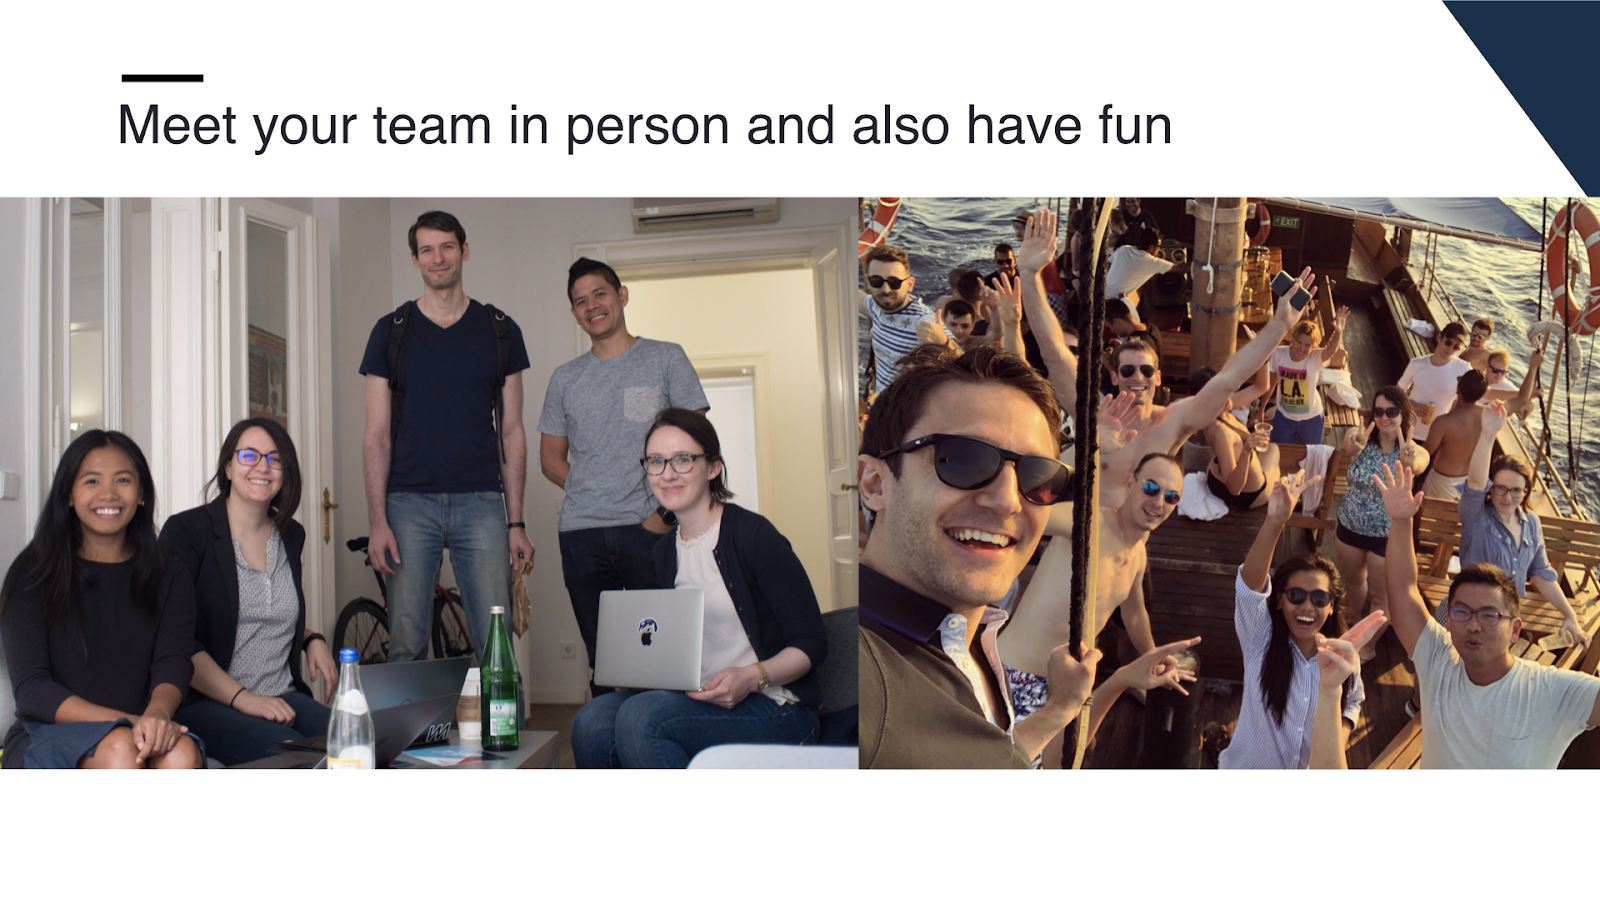 Meet your team in person and have fun